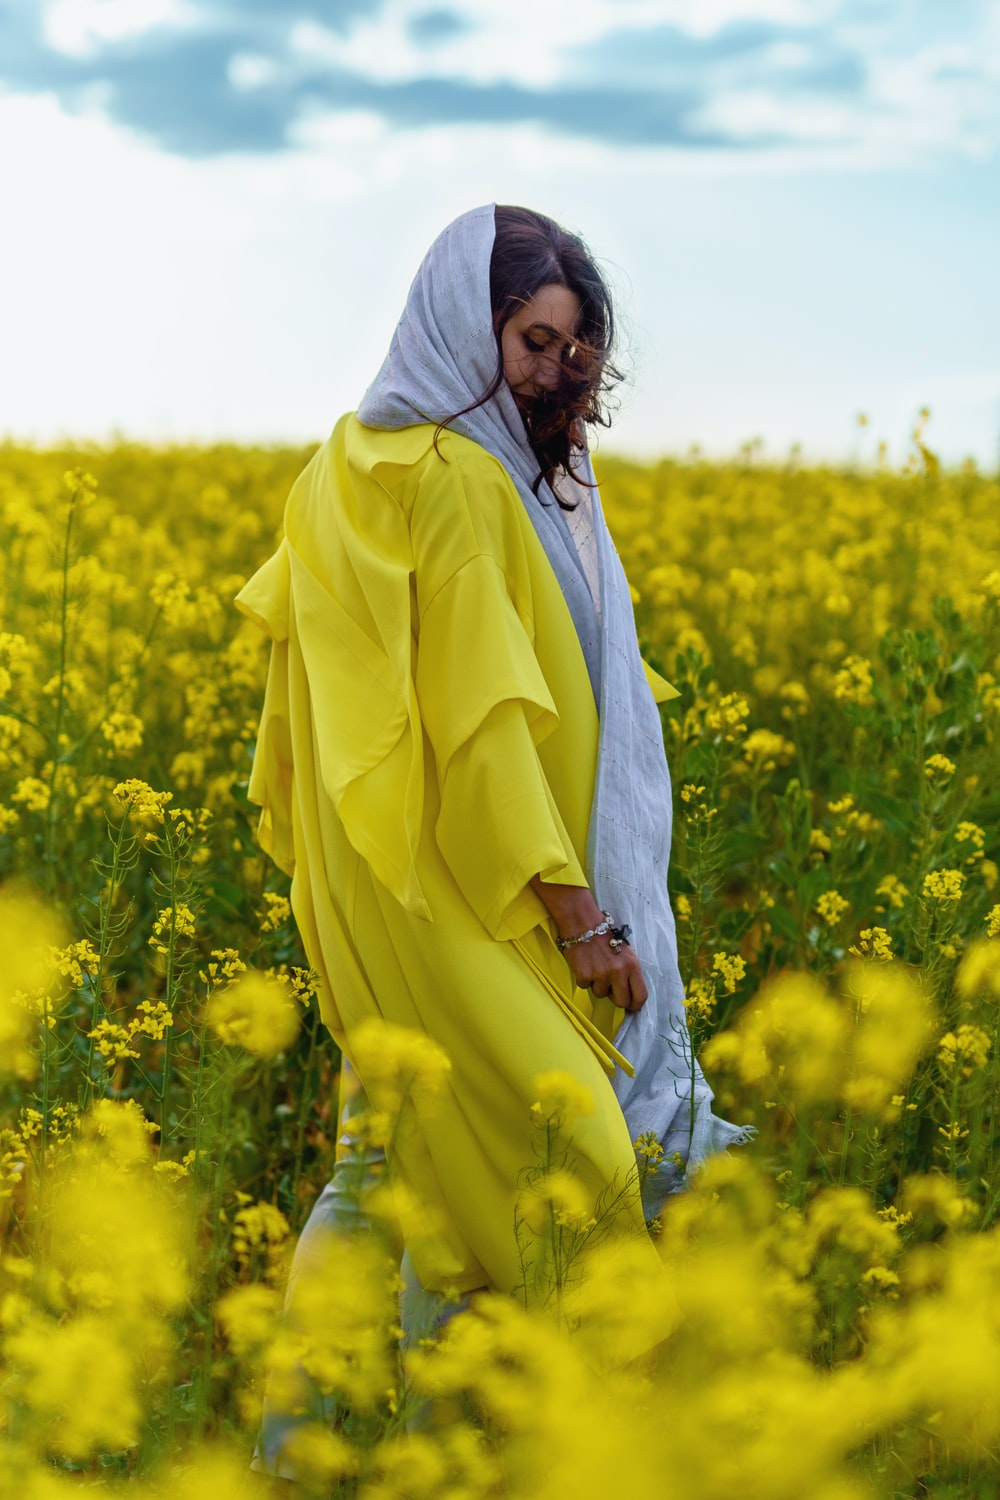 woman in white robe standing on yellow flower field during daytime